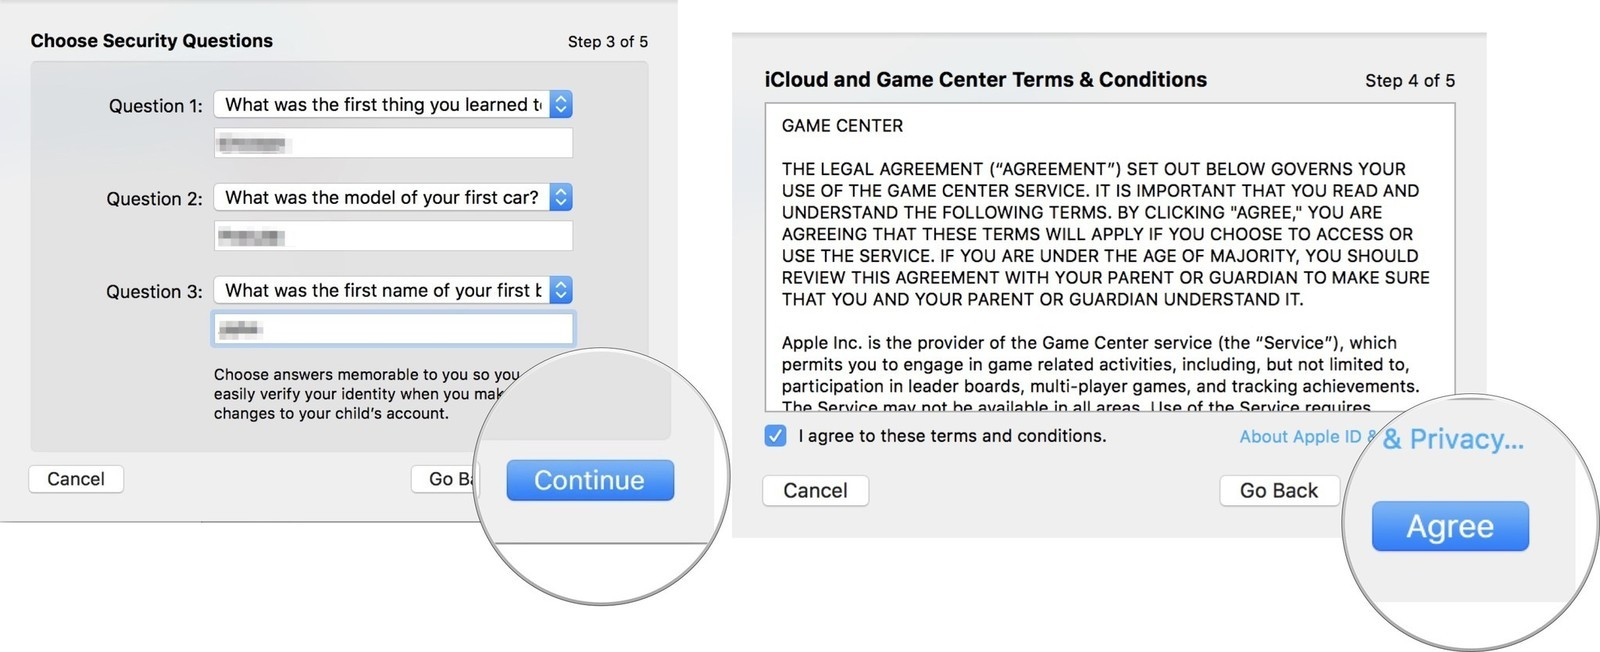 Enter your security questions and answers, then click continue, then agree to Apple's T&C, then click Continue